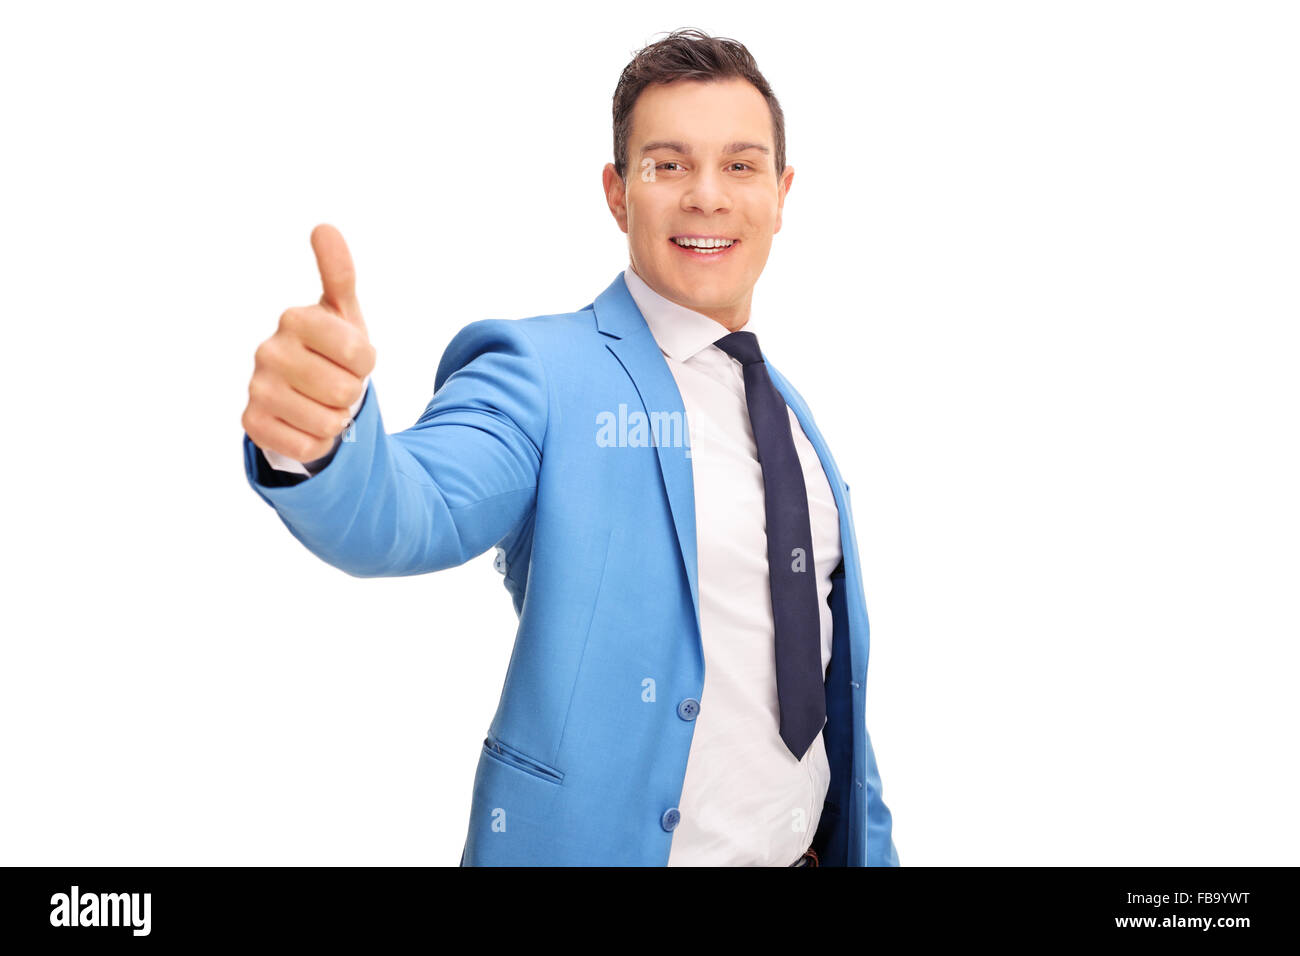 Young cheerful man in a blue suit giving a thumb up isolated on white background - Stock Image